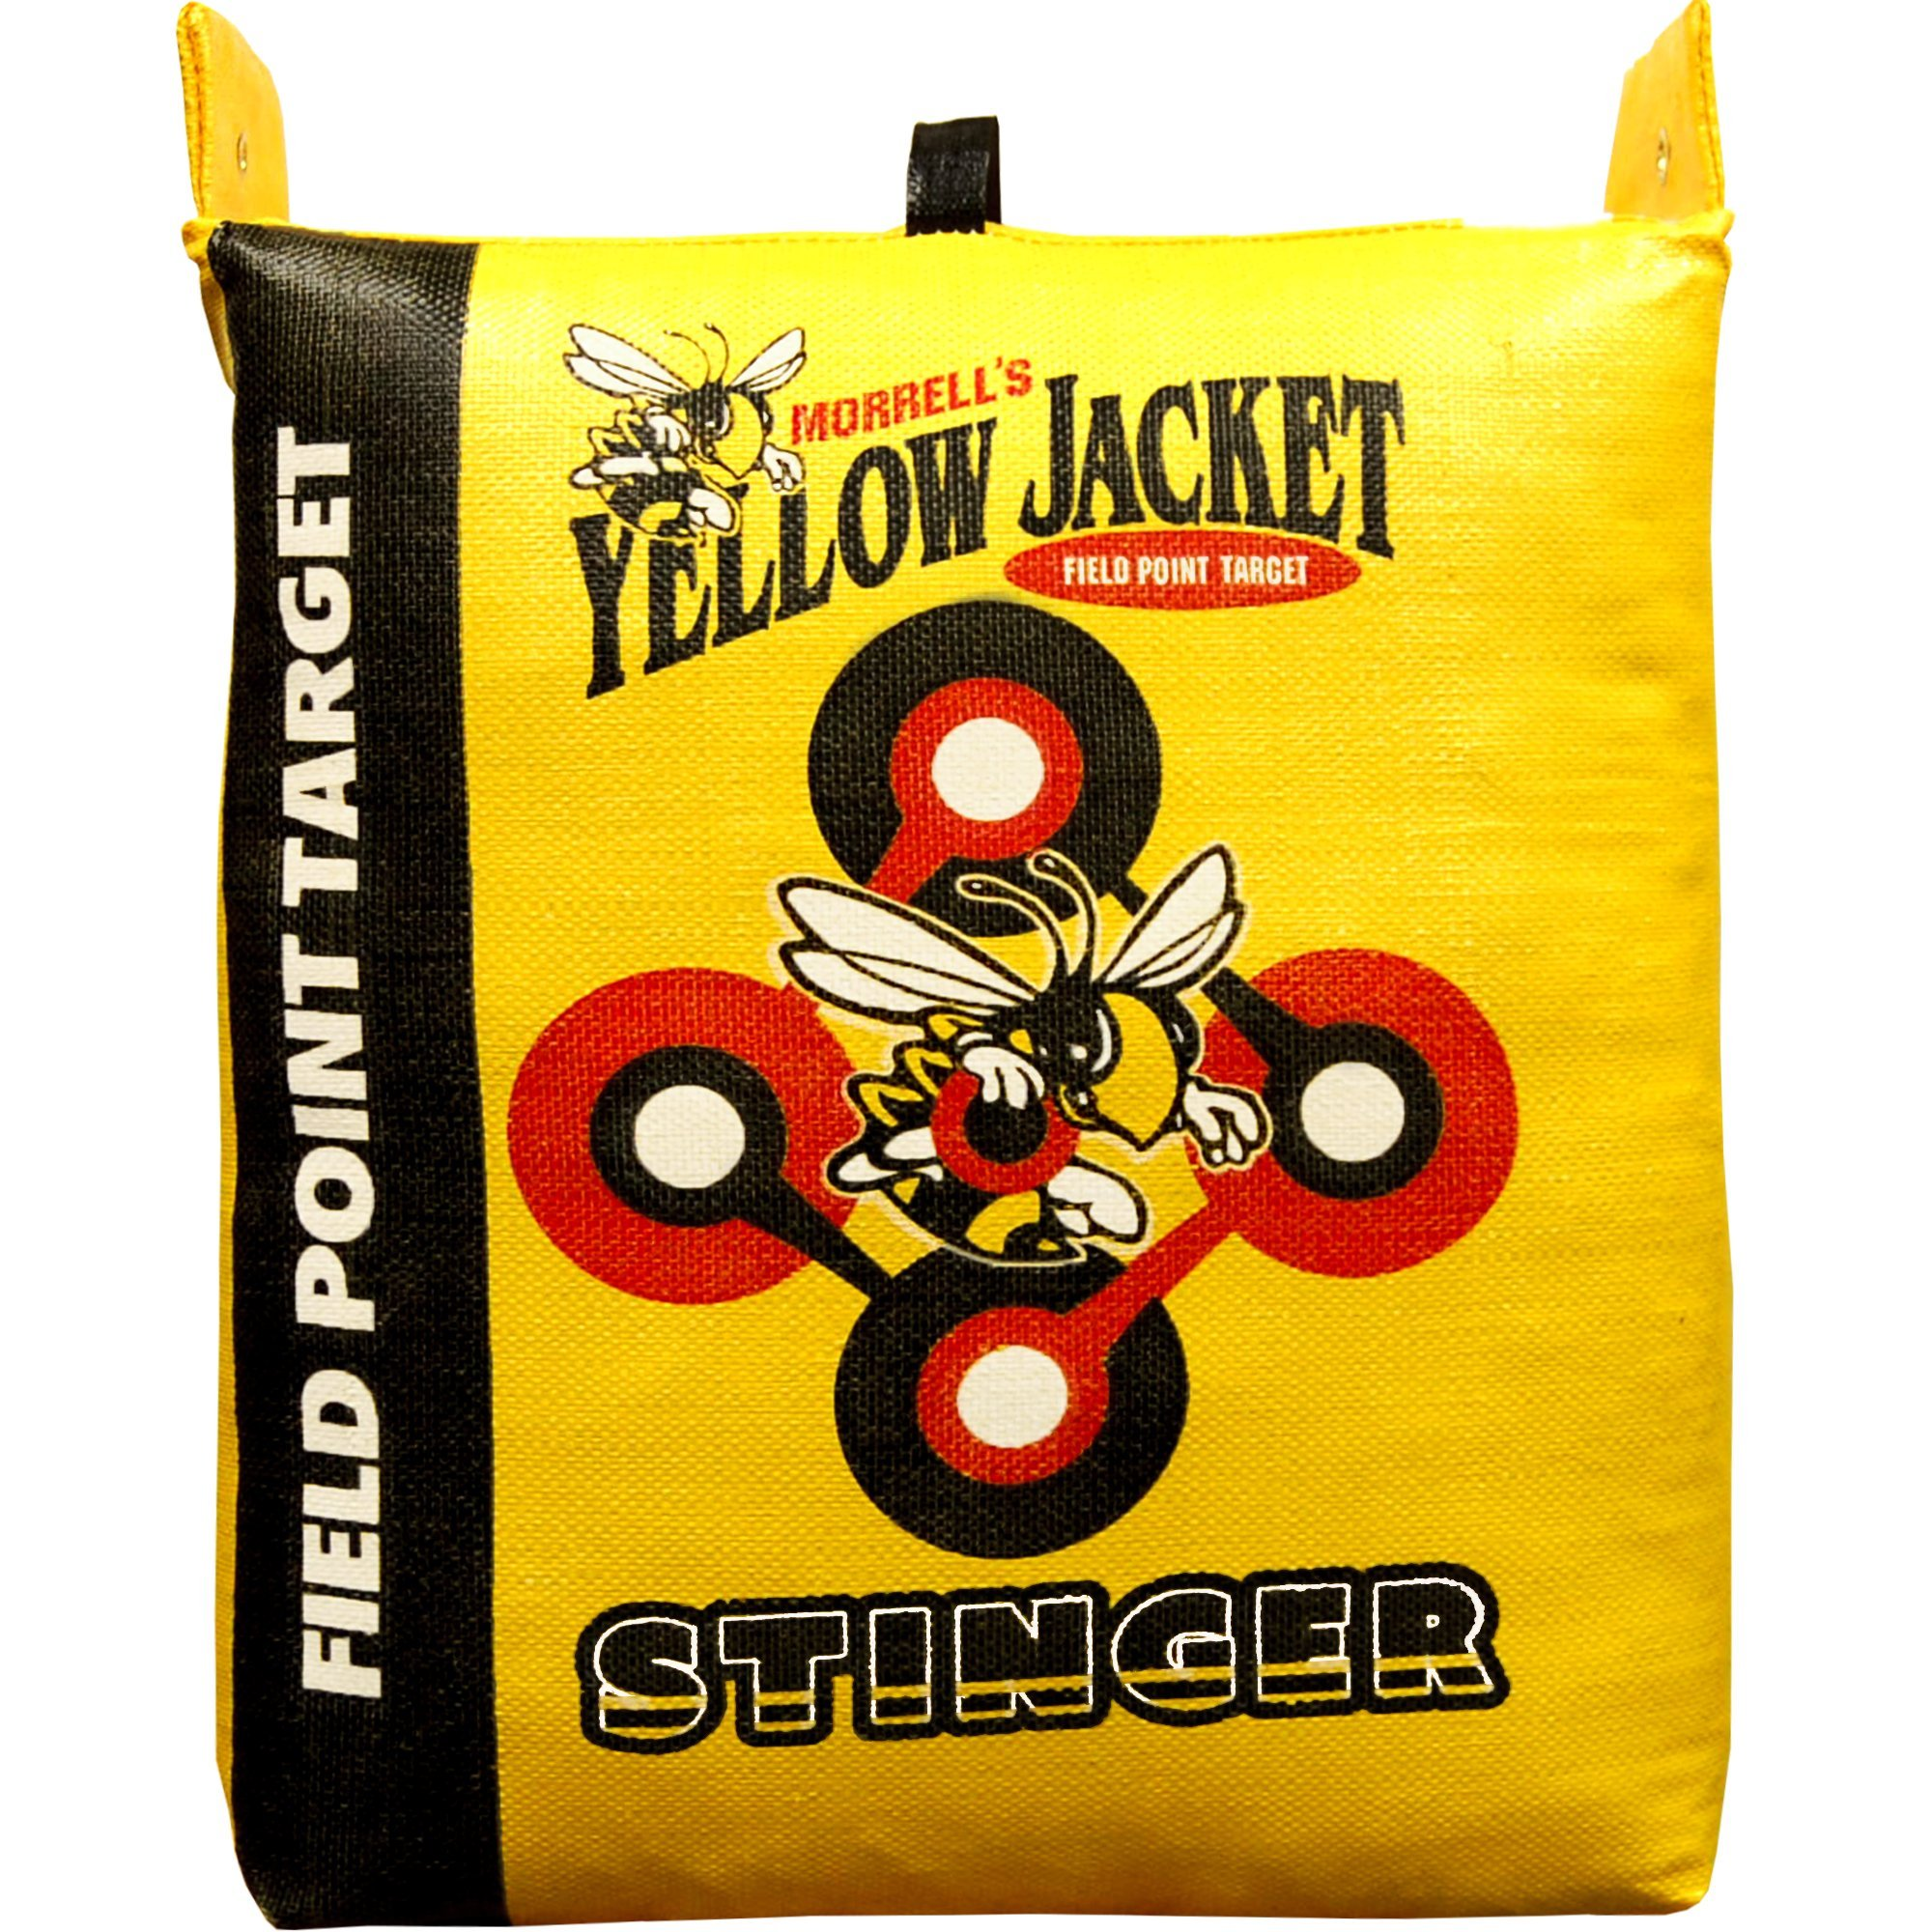 Morrell Yellow Jacket Stinger Field Point Bag Archery Target  - Great for Compound and Traditional Bows by Morrell (Image #5)